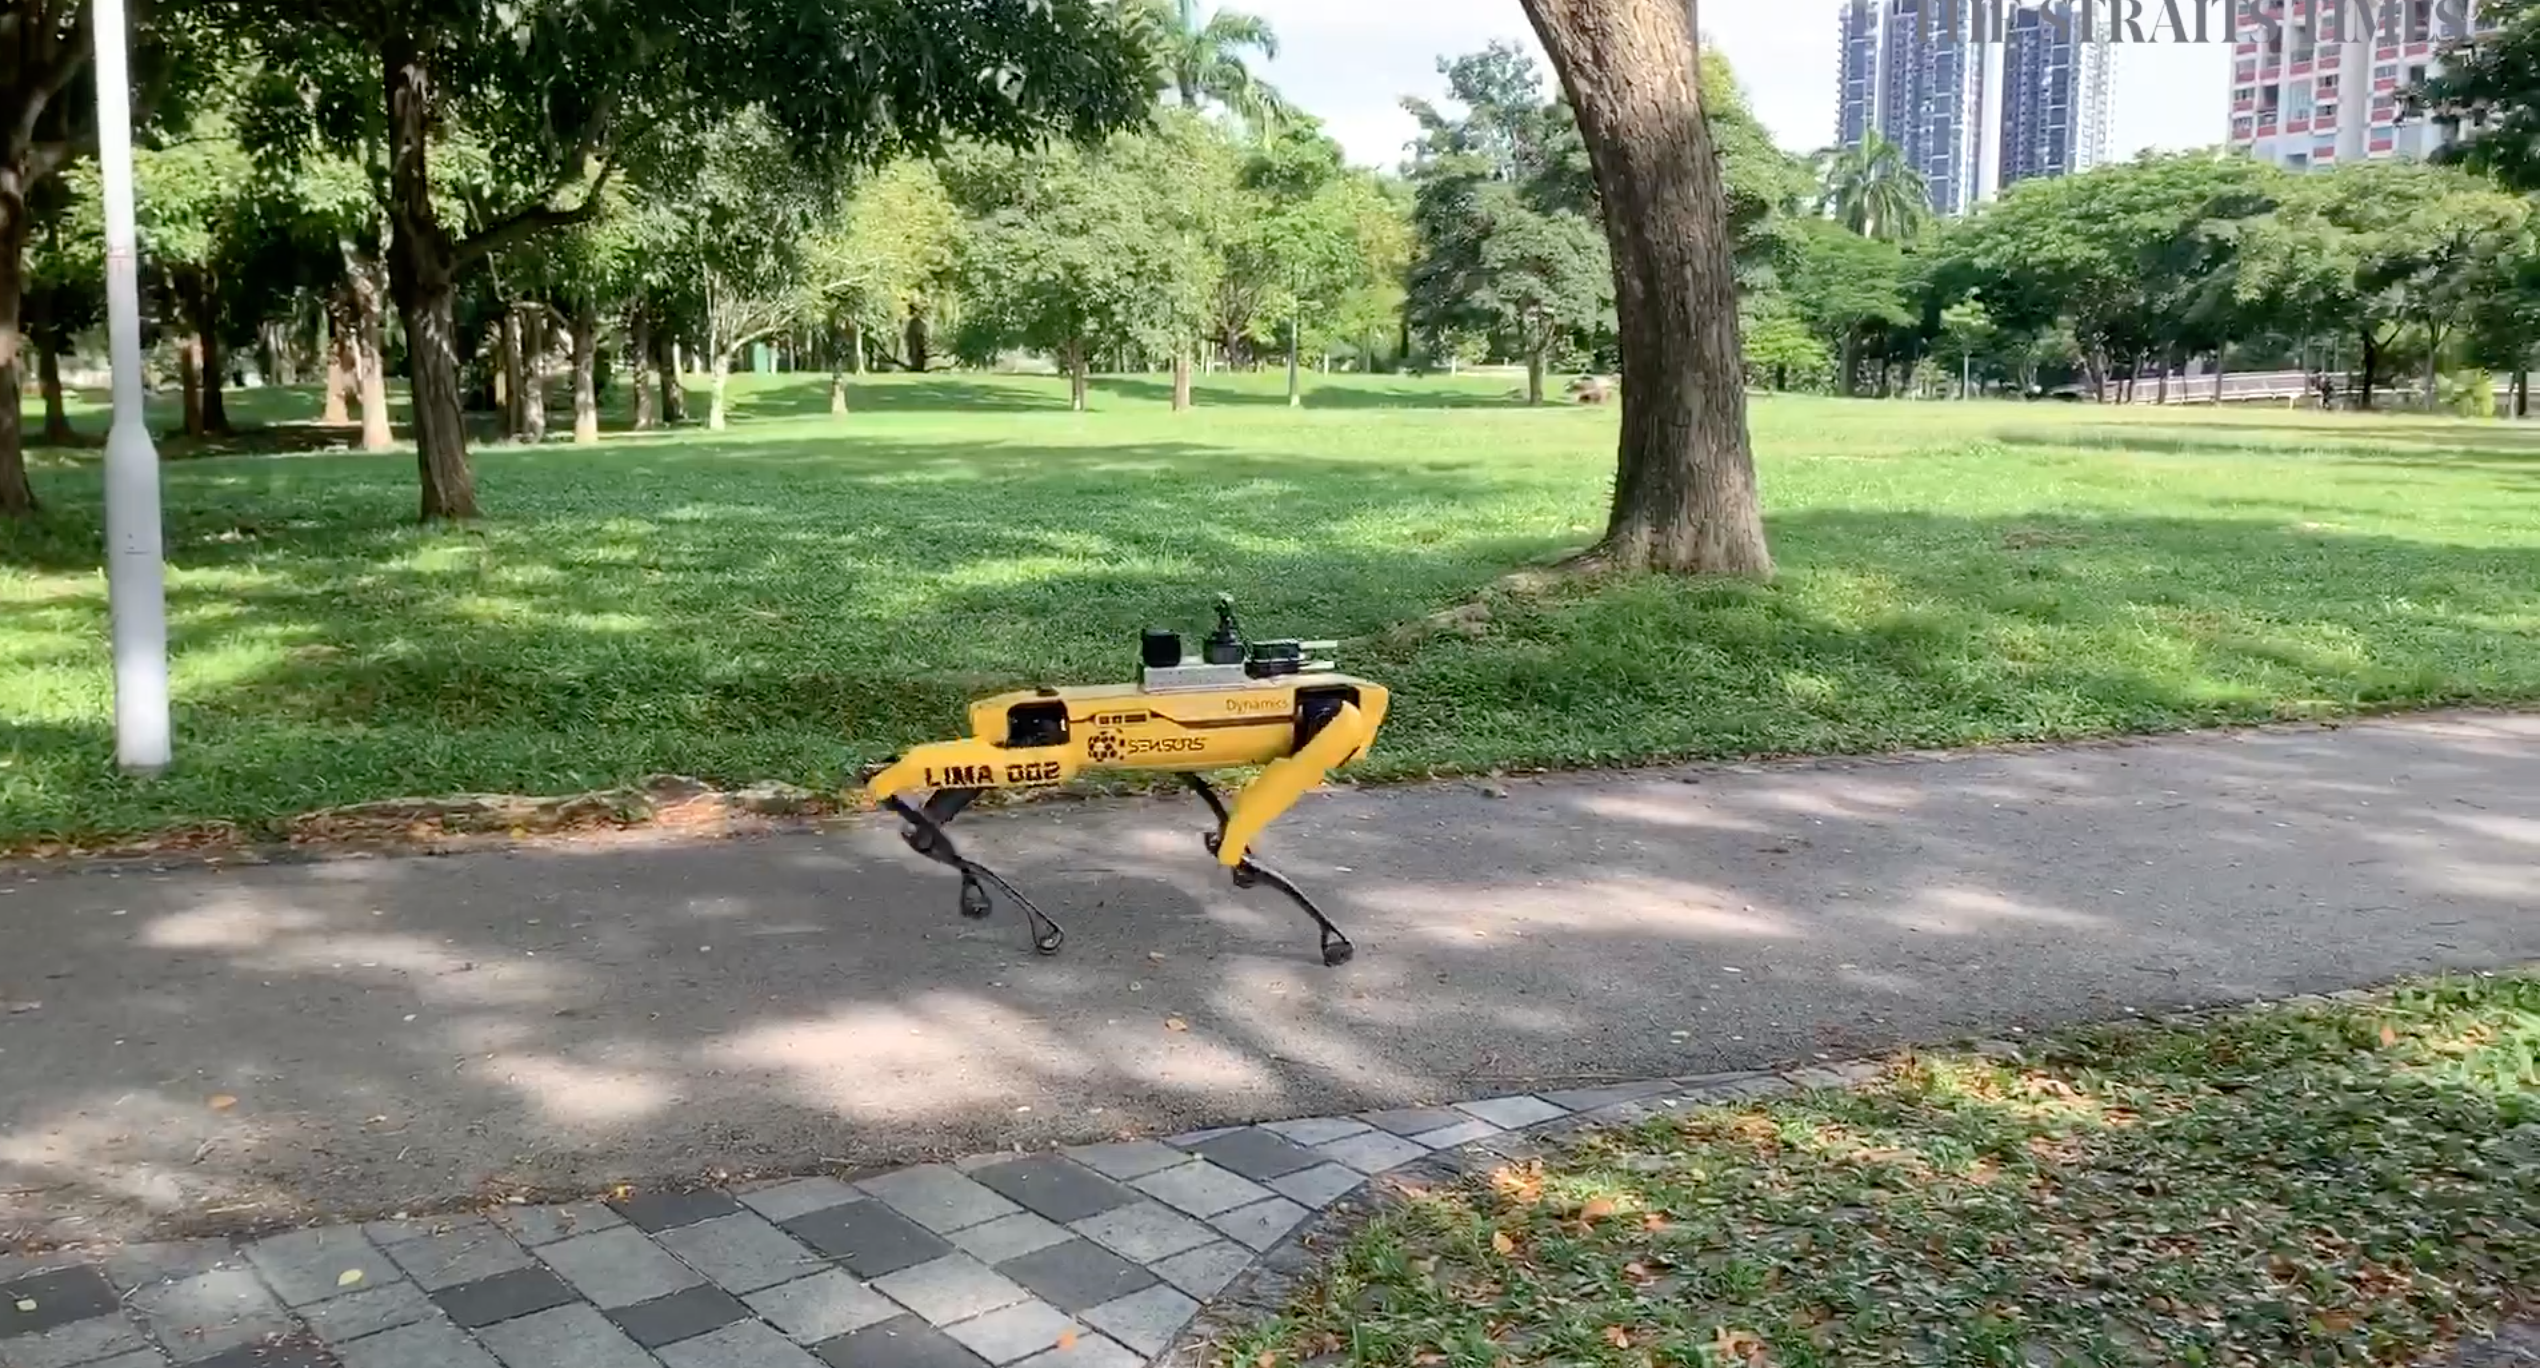 Spot the robot dog on patrol in Singapore